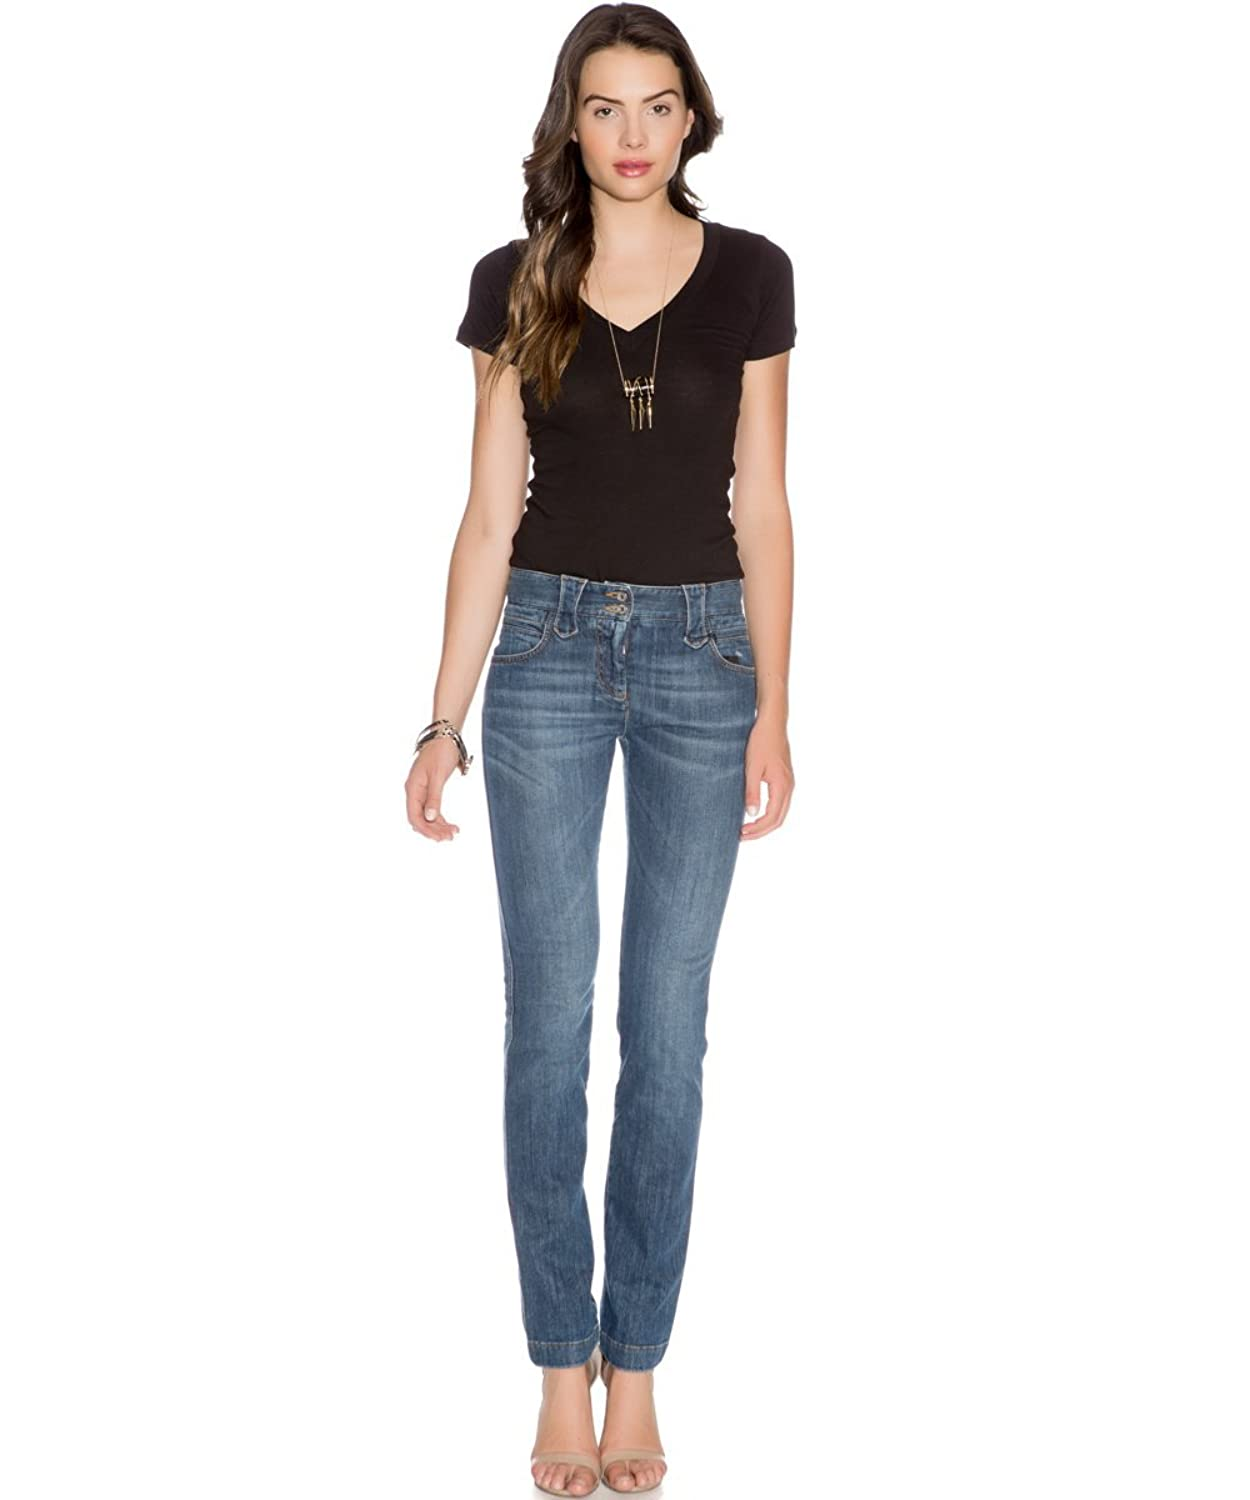 Dolce and Gabbana Women's Western Inspired Blue Jeans